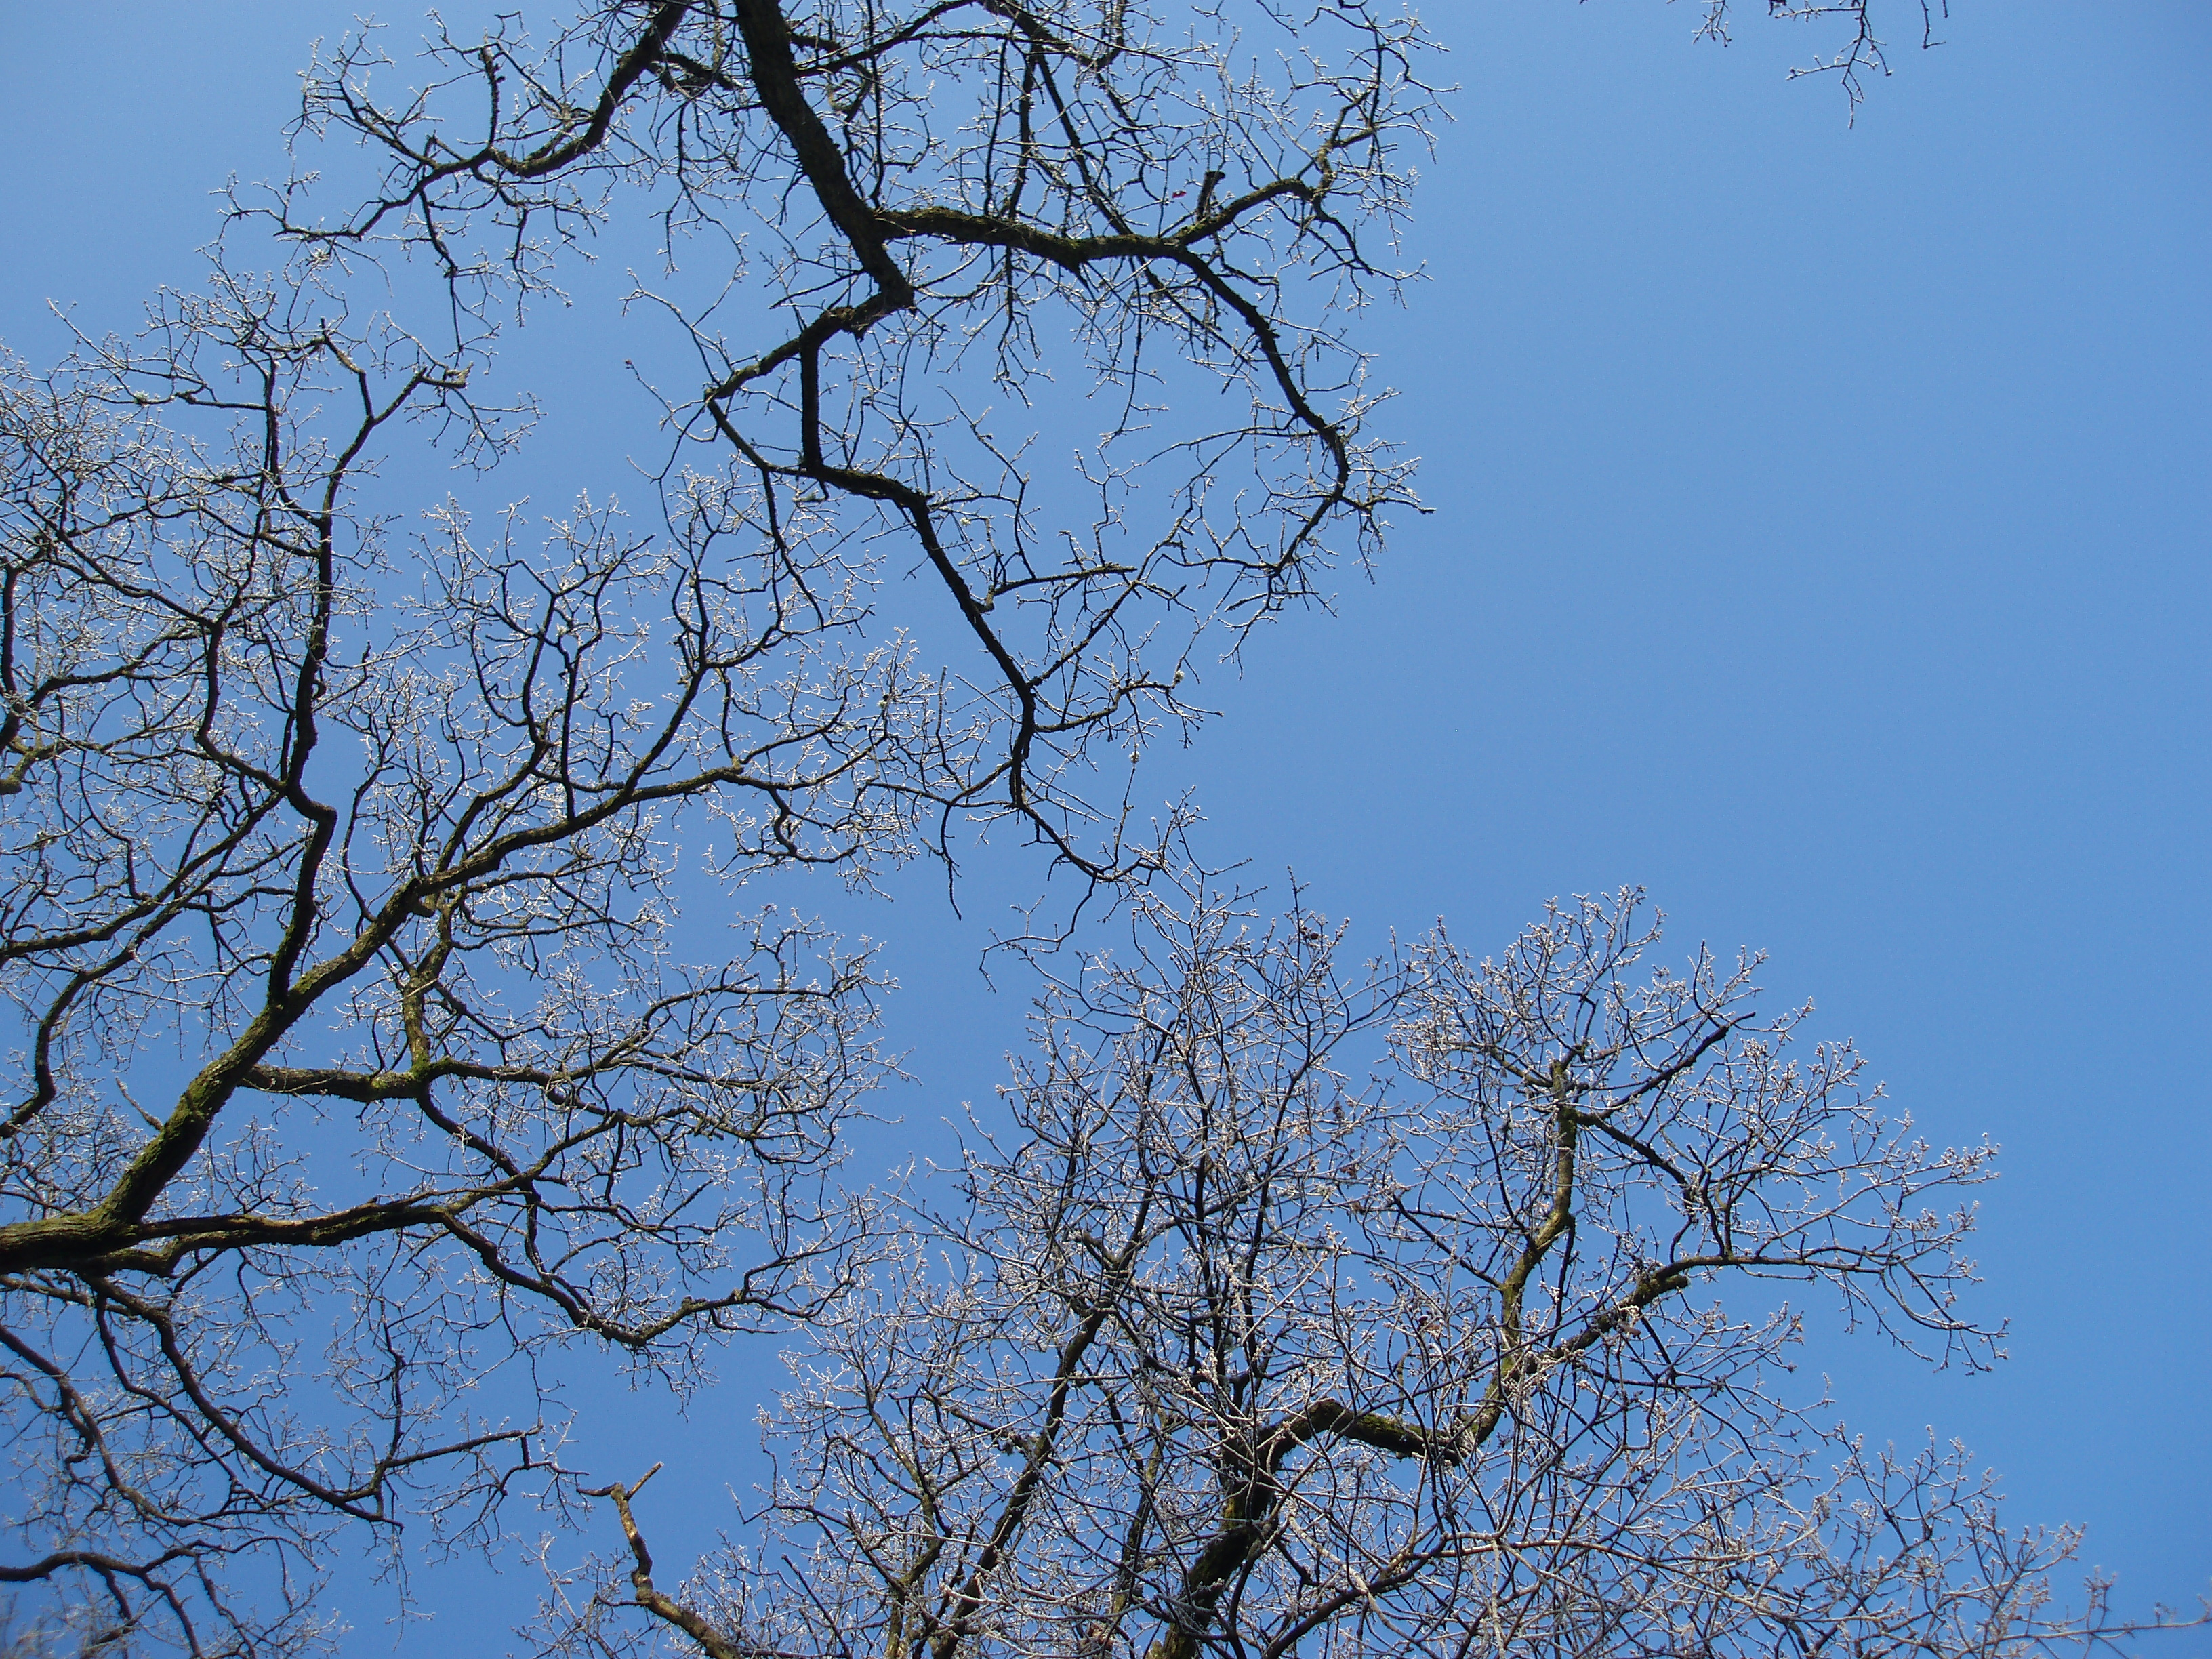 winter trees against a blue sky | Free backgrounds and textures ...